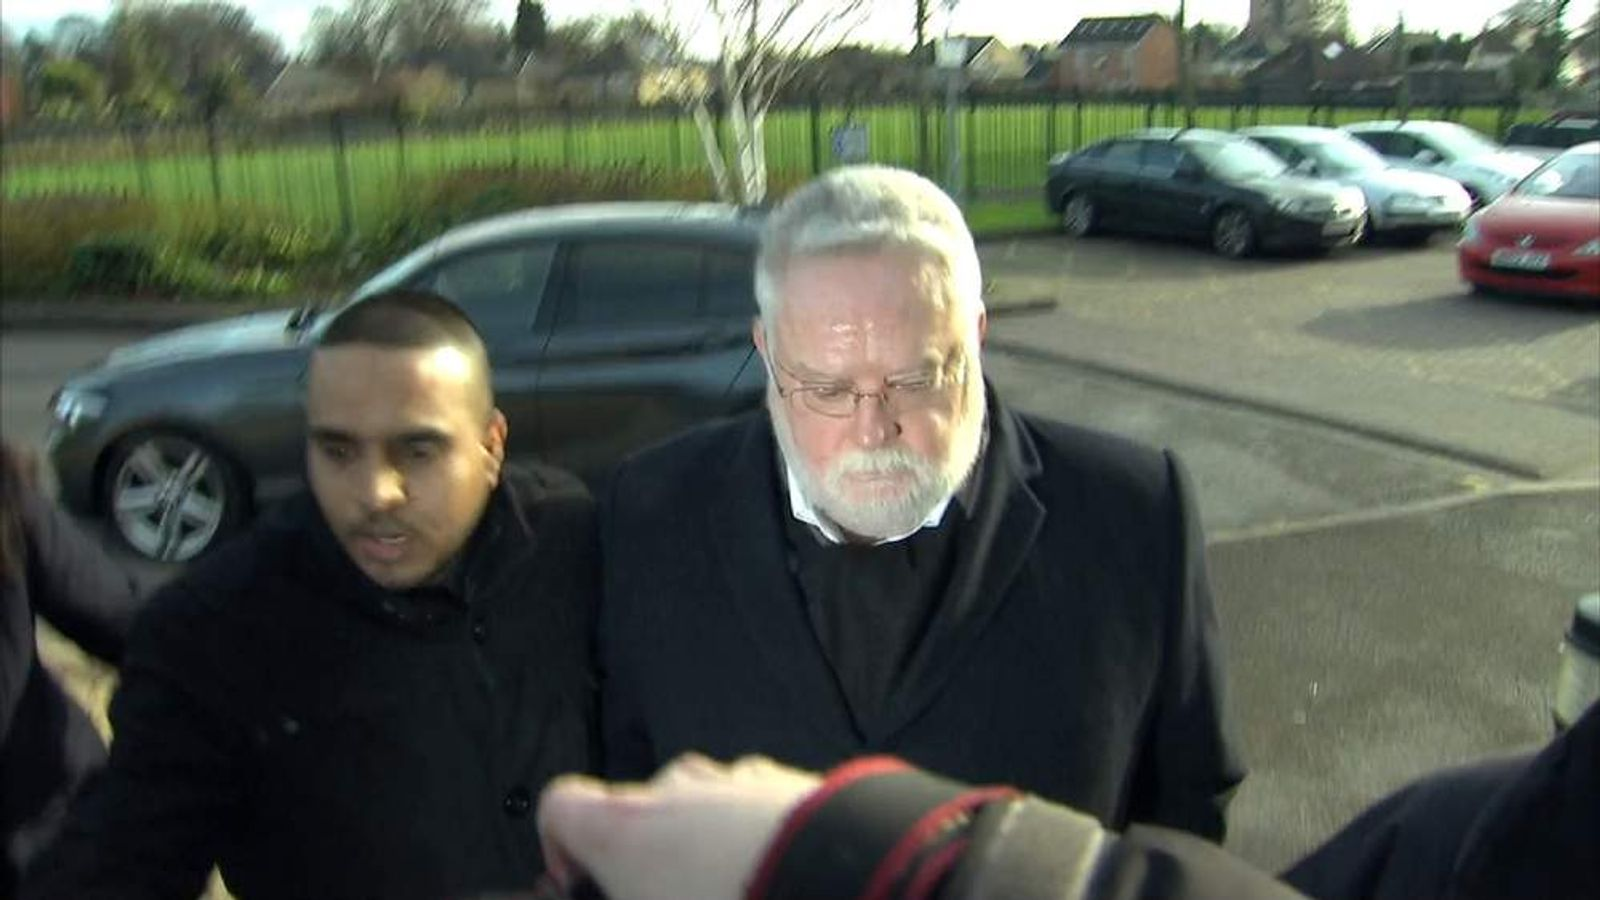 Paul Flowers answering bail in Leeds